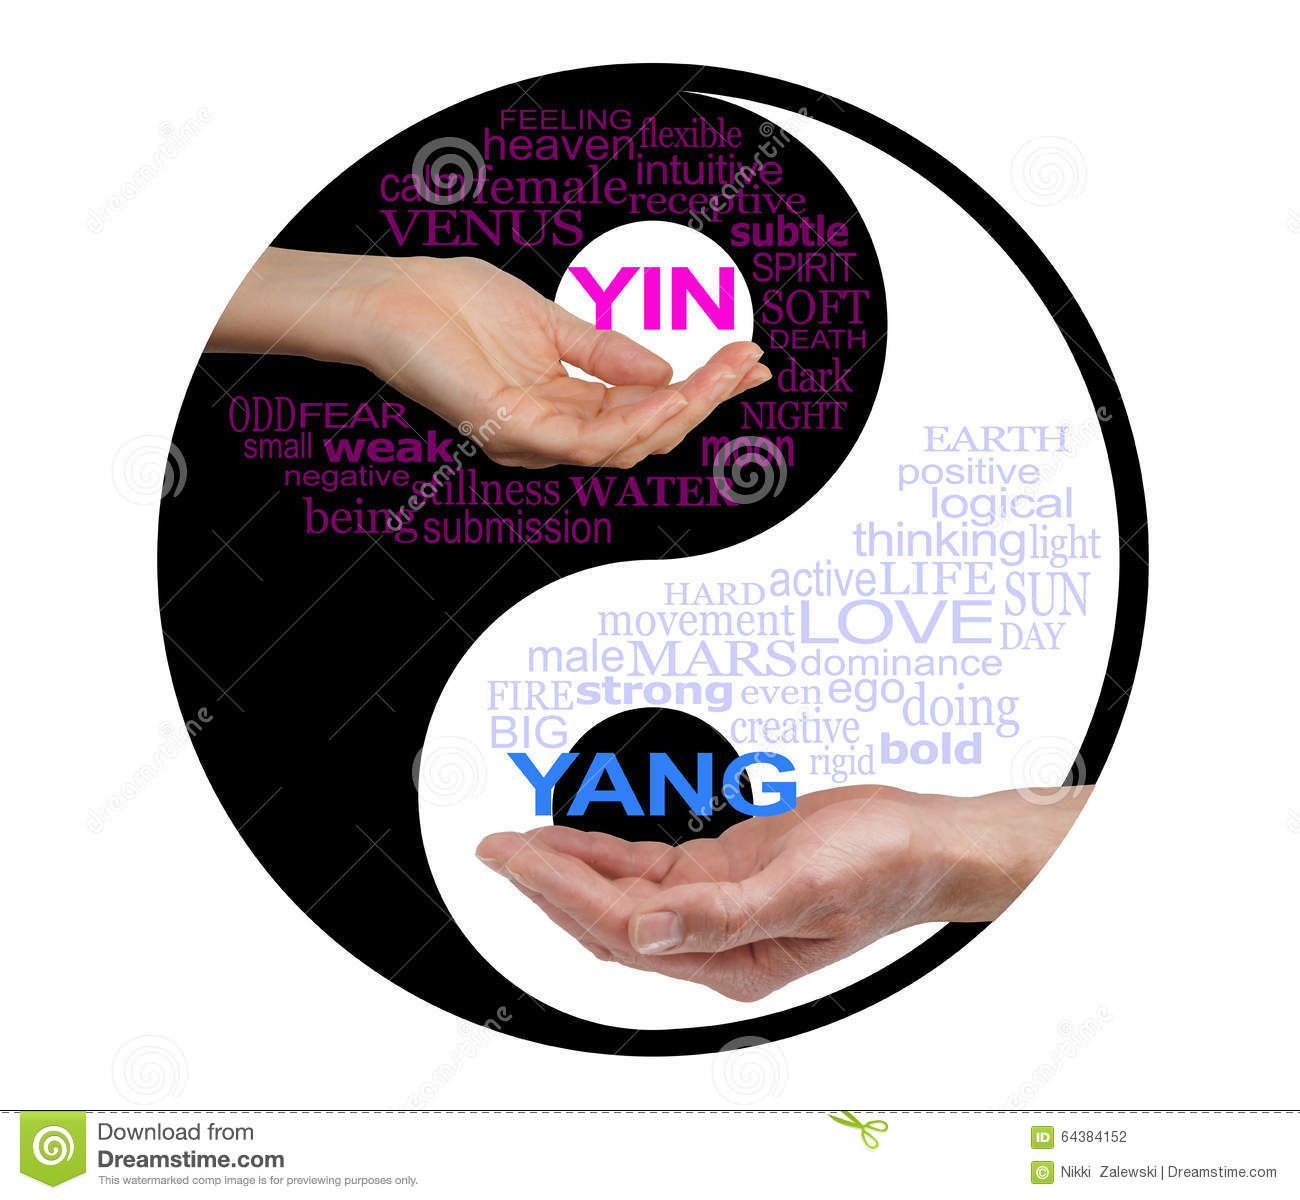 Yin And Yang Together We Are Stronger Stock Photo Image Of Female